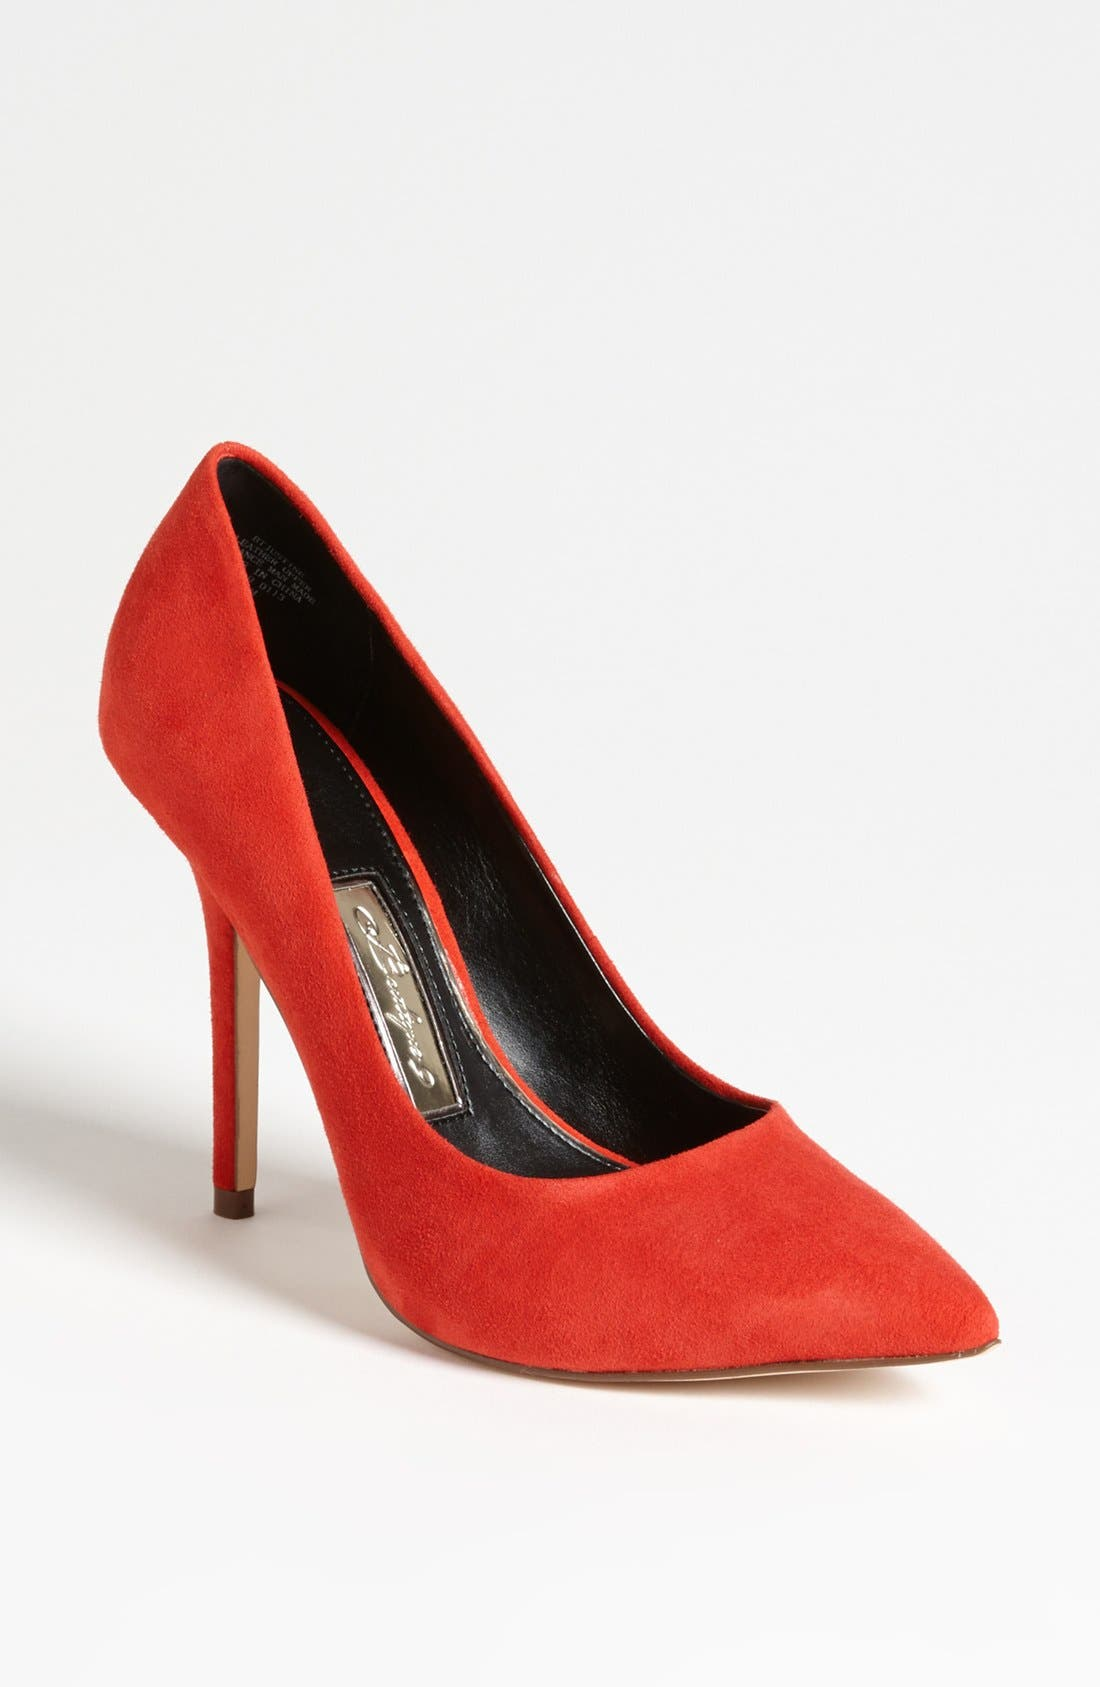 Main Image - Boutique 9 'Justine' Pump